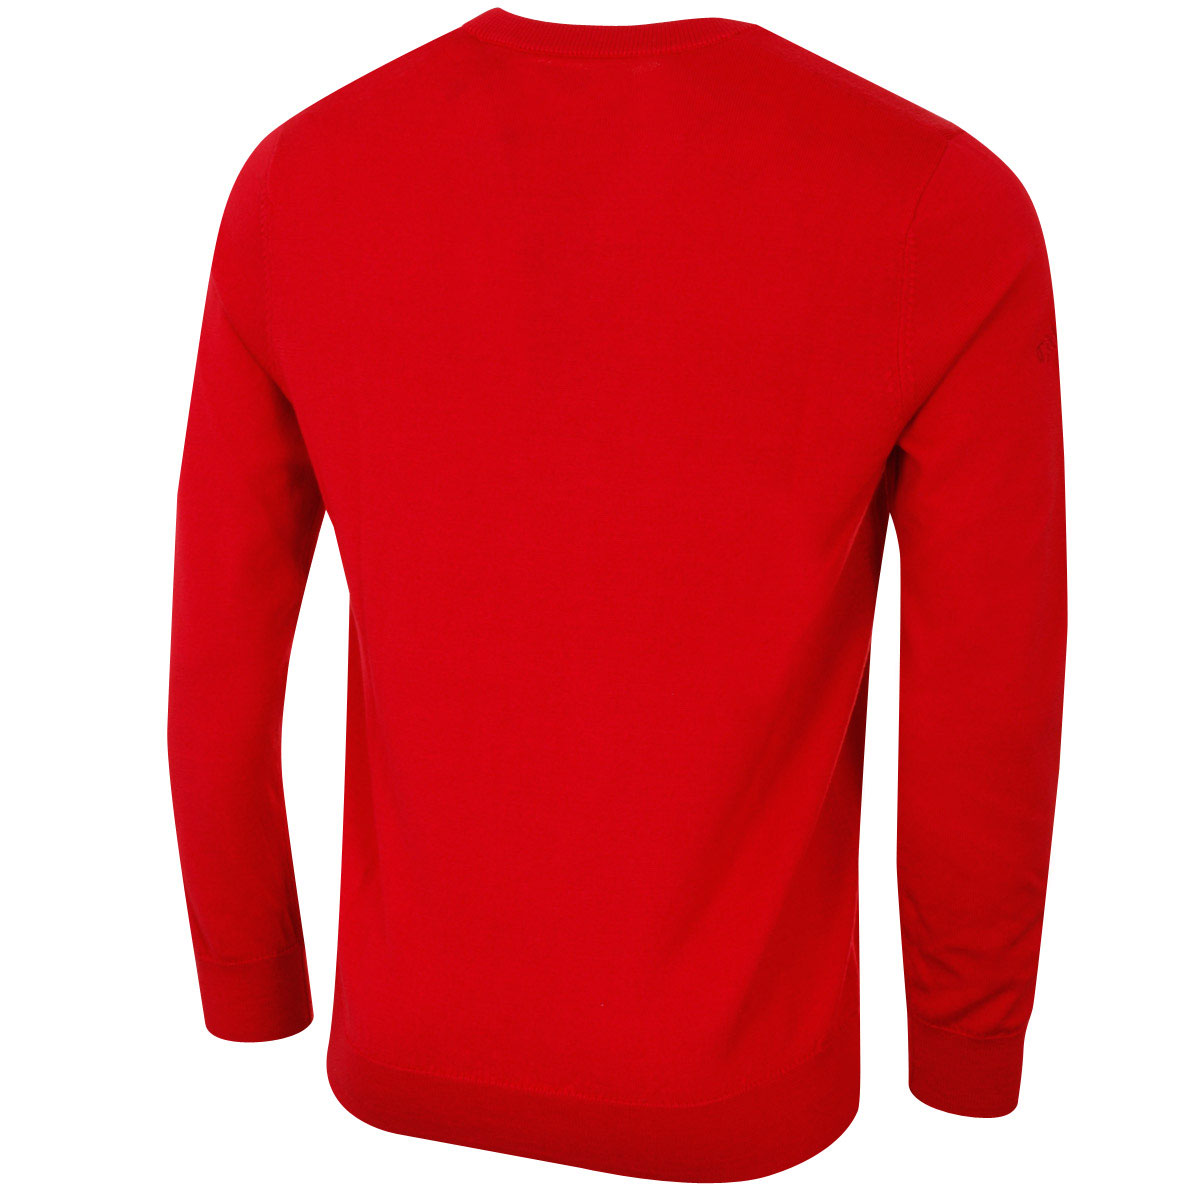 Callaway-Golf-Mens-Ribbed-V-Neck-Merino-Opti-Therm-Sweater-Jumper-64-OFF-RRP thumbnail 17